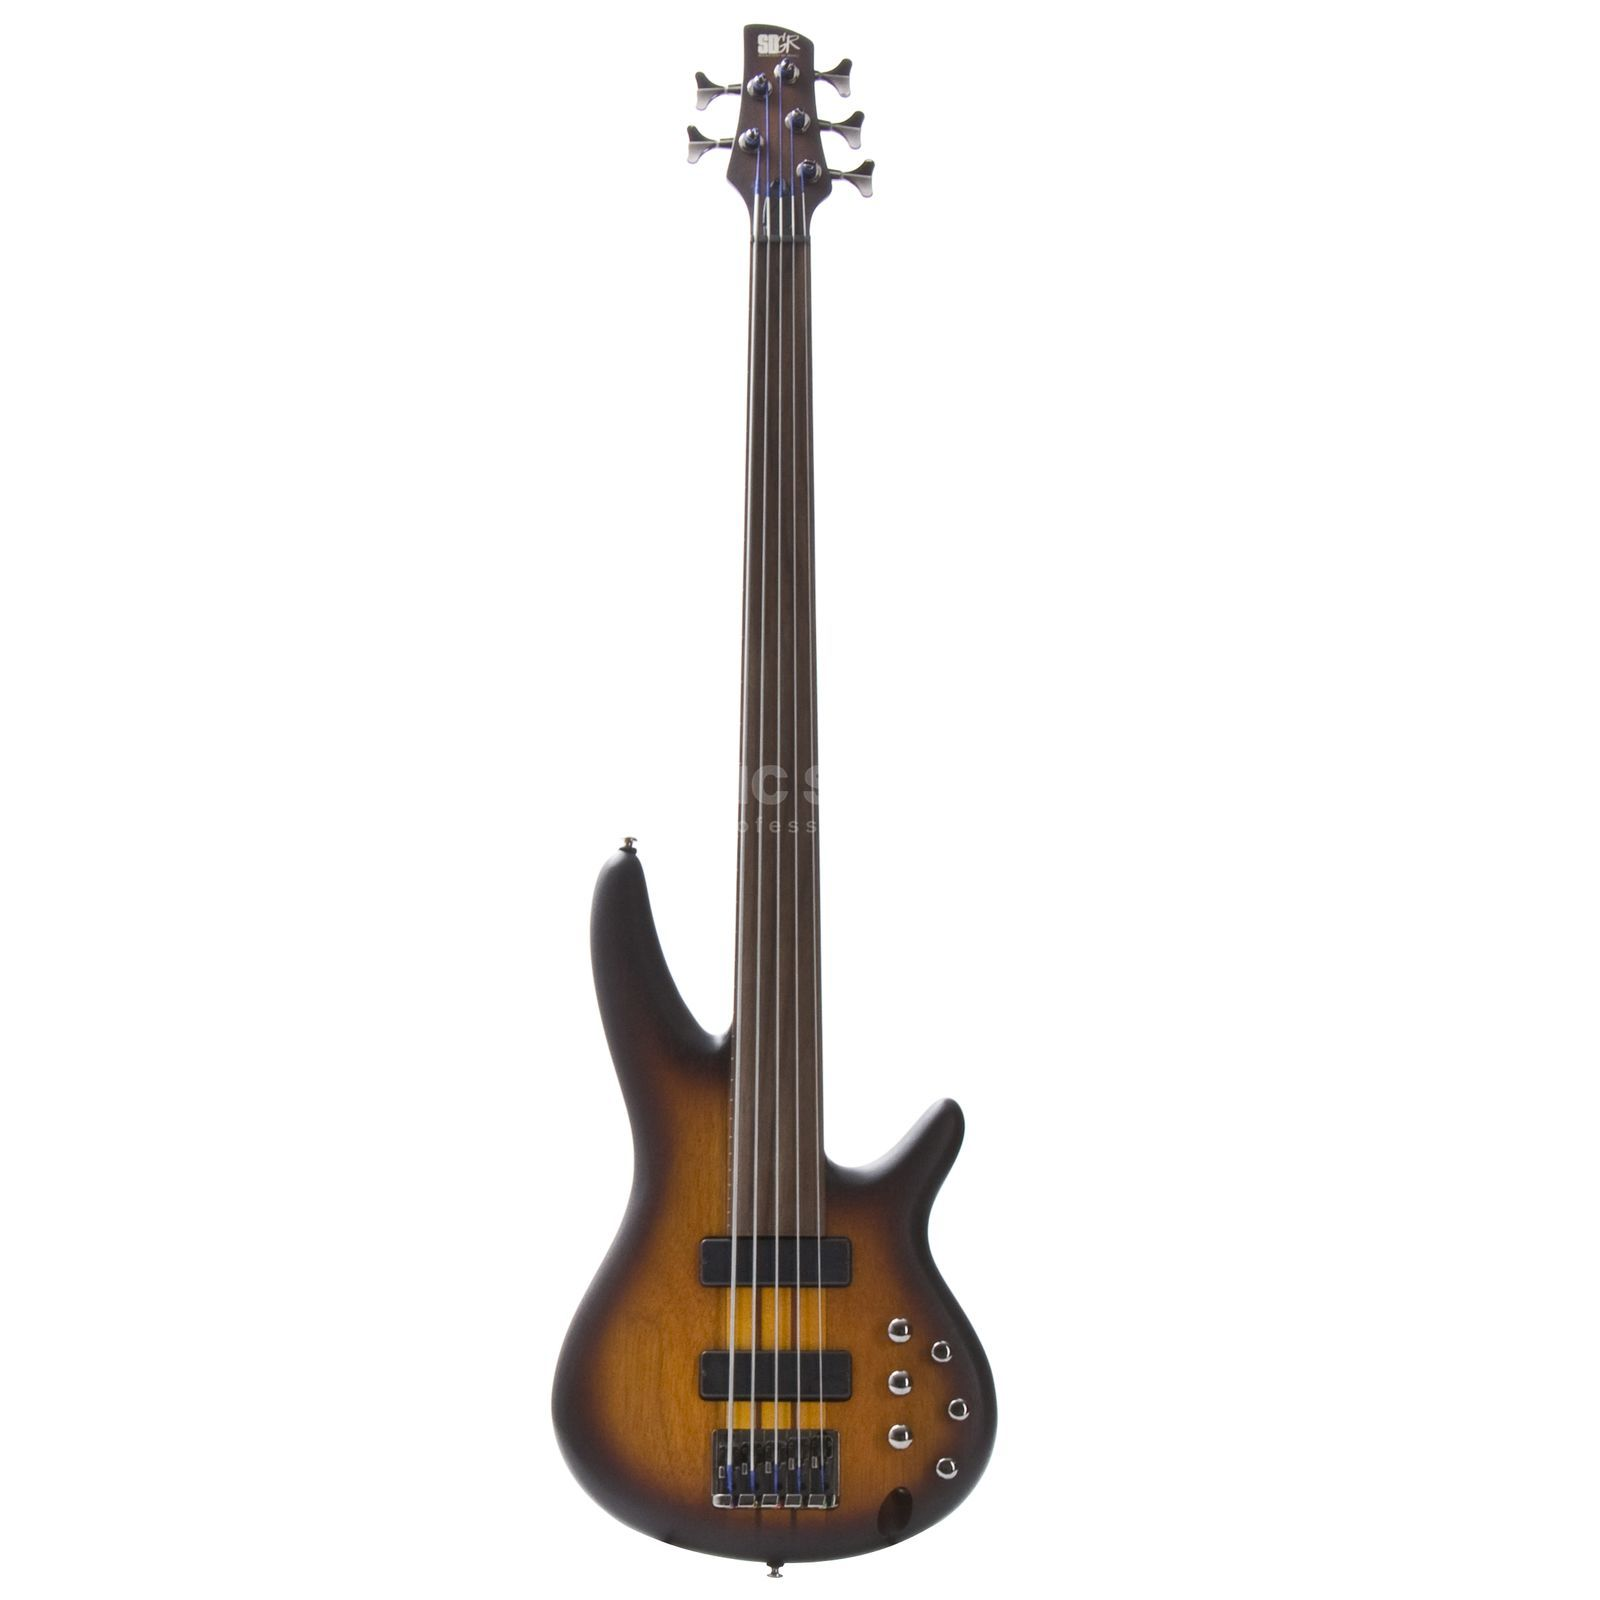 Ibanez SRF 705 BBF Fretless Brown Burst Flat Изображение товара